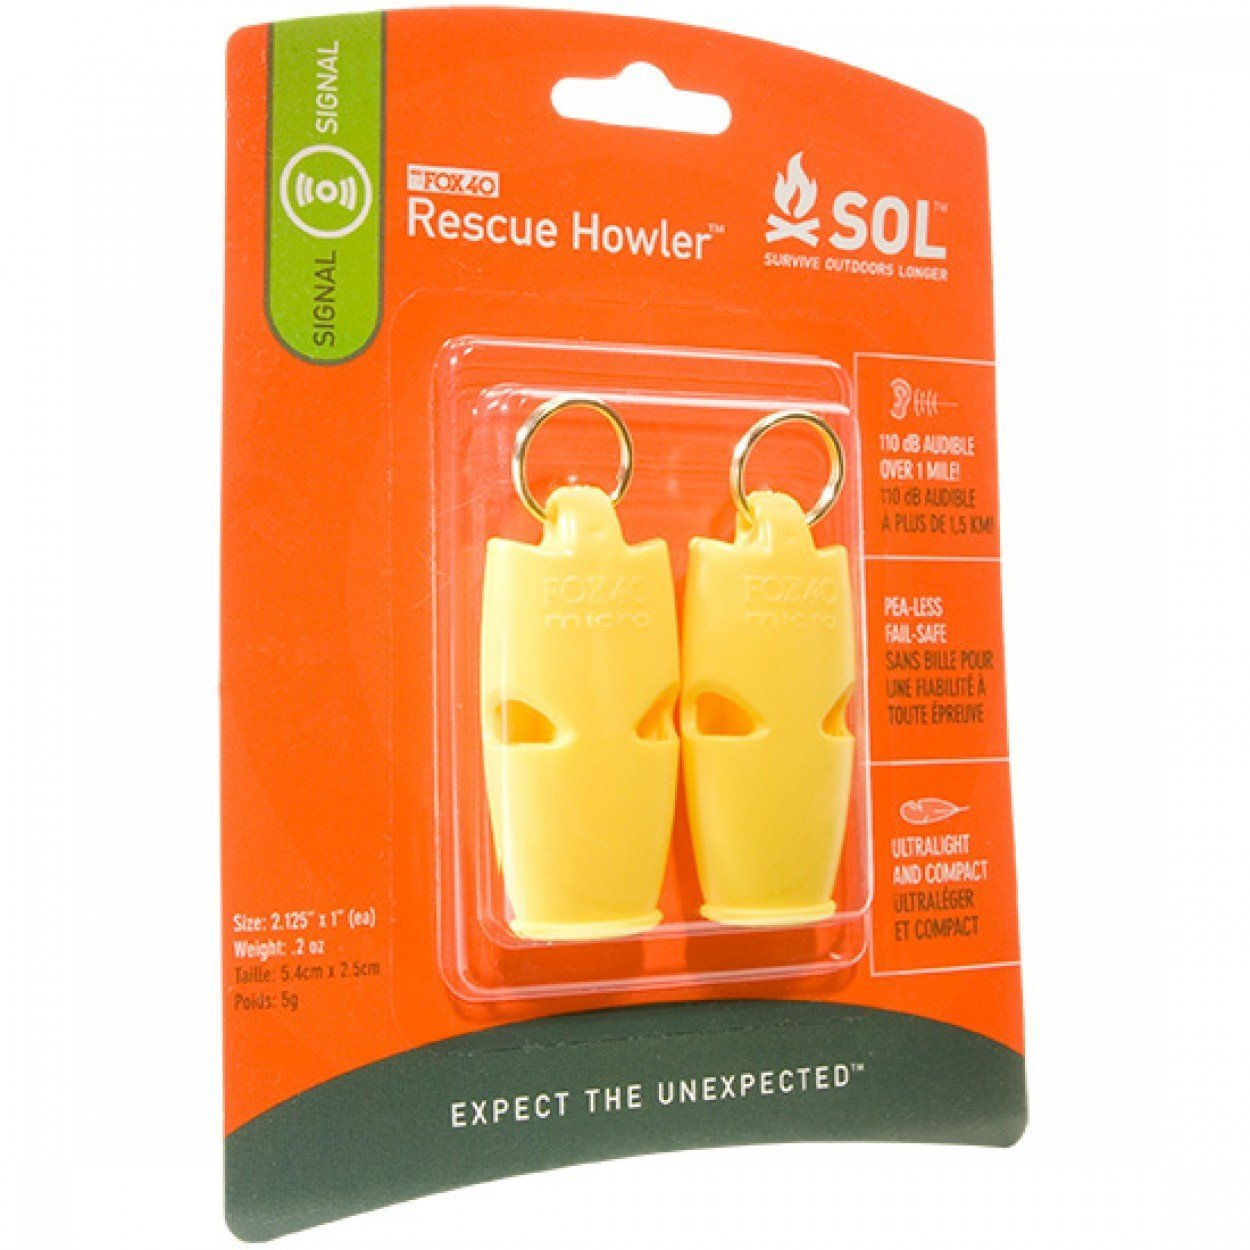 Survive Outdoors Longer SOL Rescue Howler Whistle Pack of 2 Tactical Gear Australia Supplier Distributor Dealer